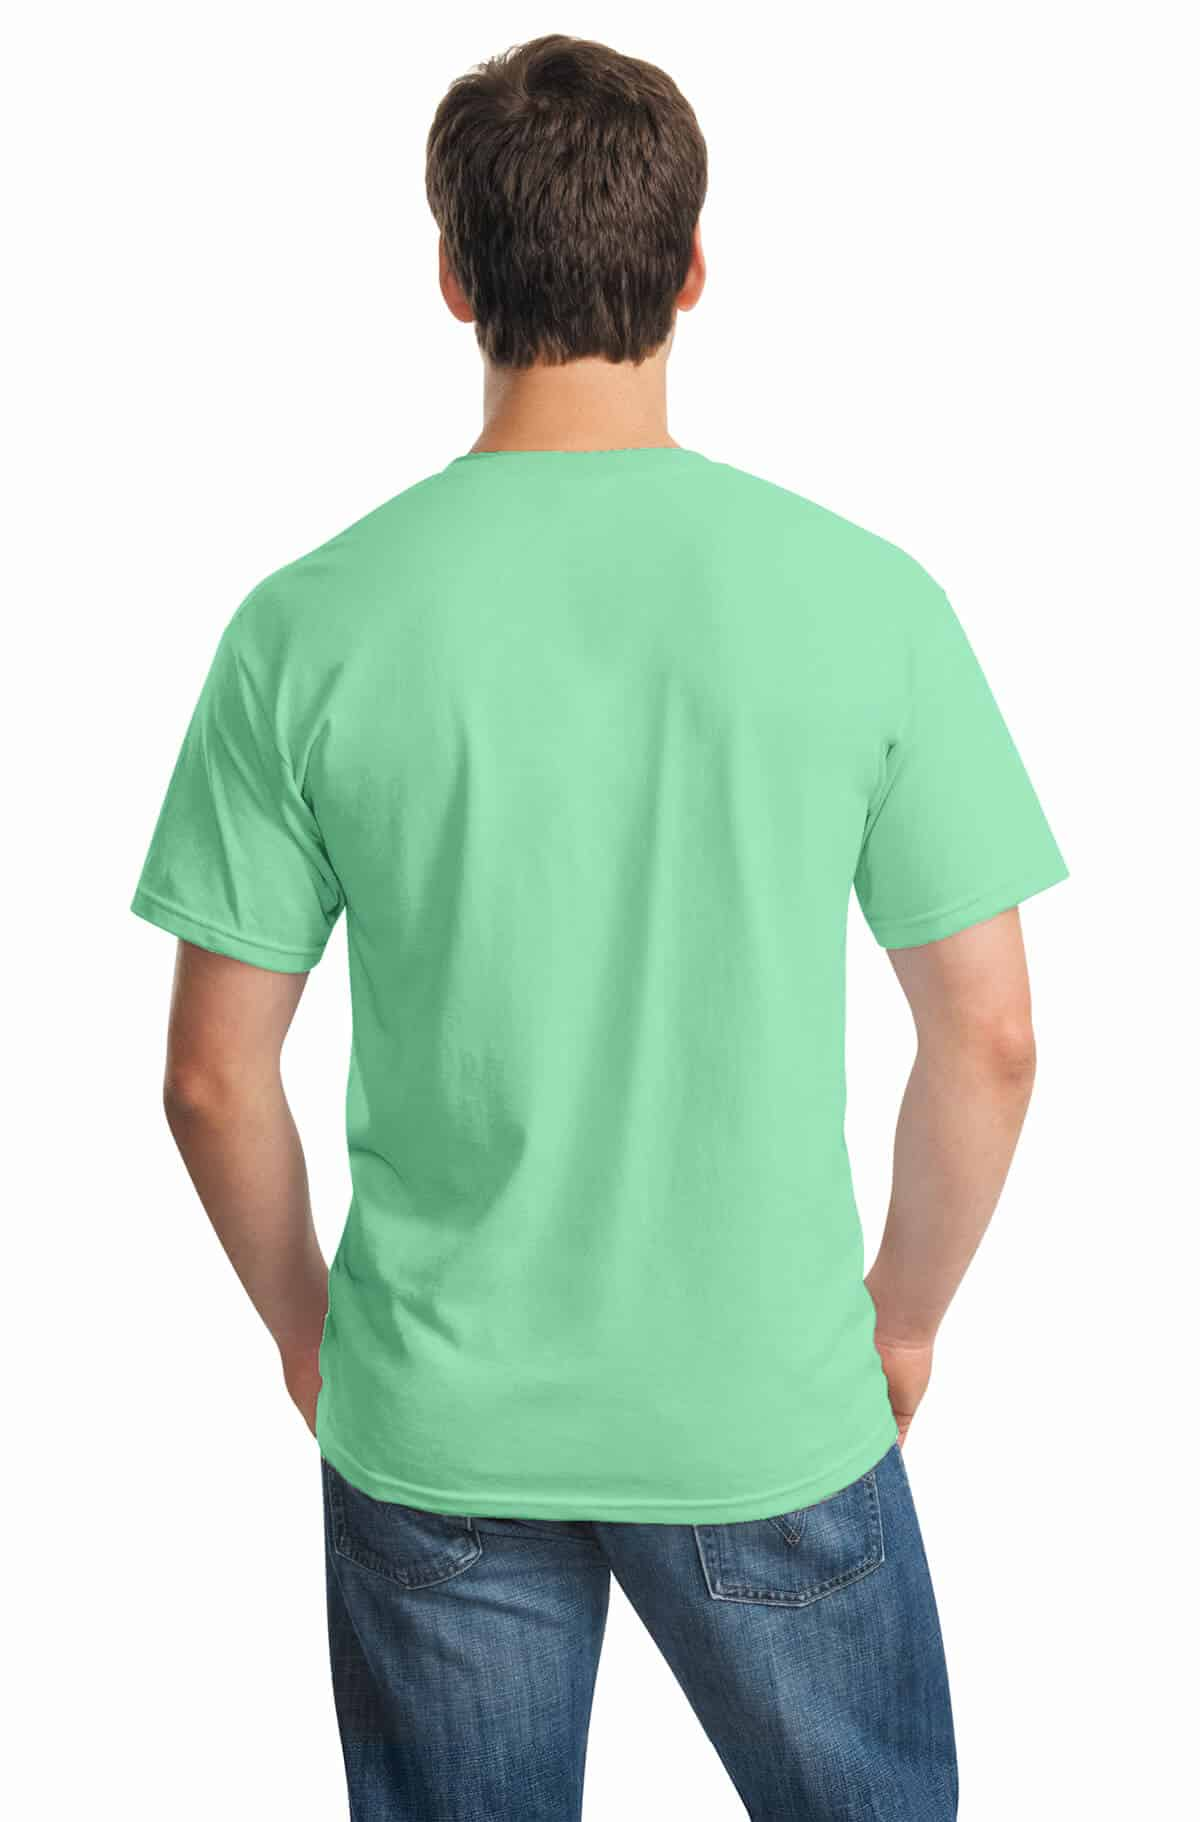 Mint Green Tee Back